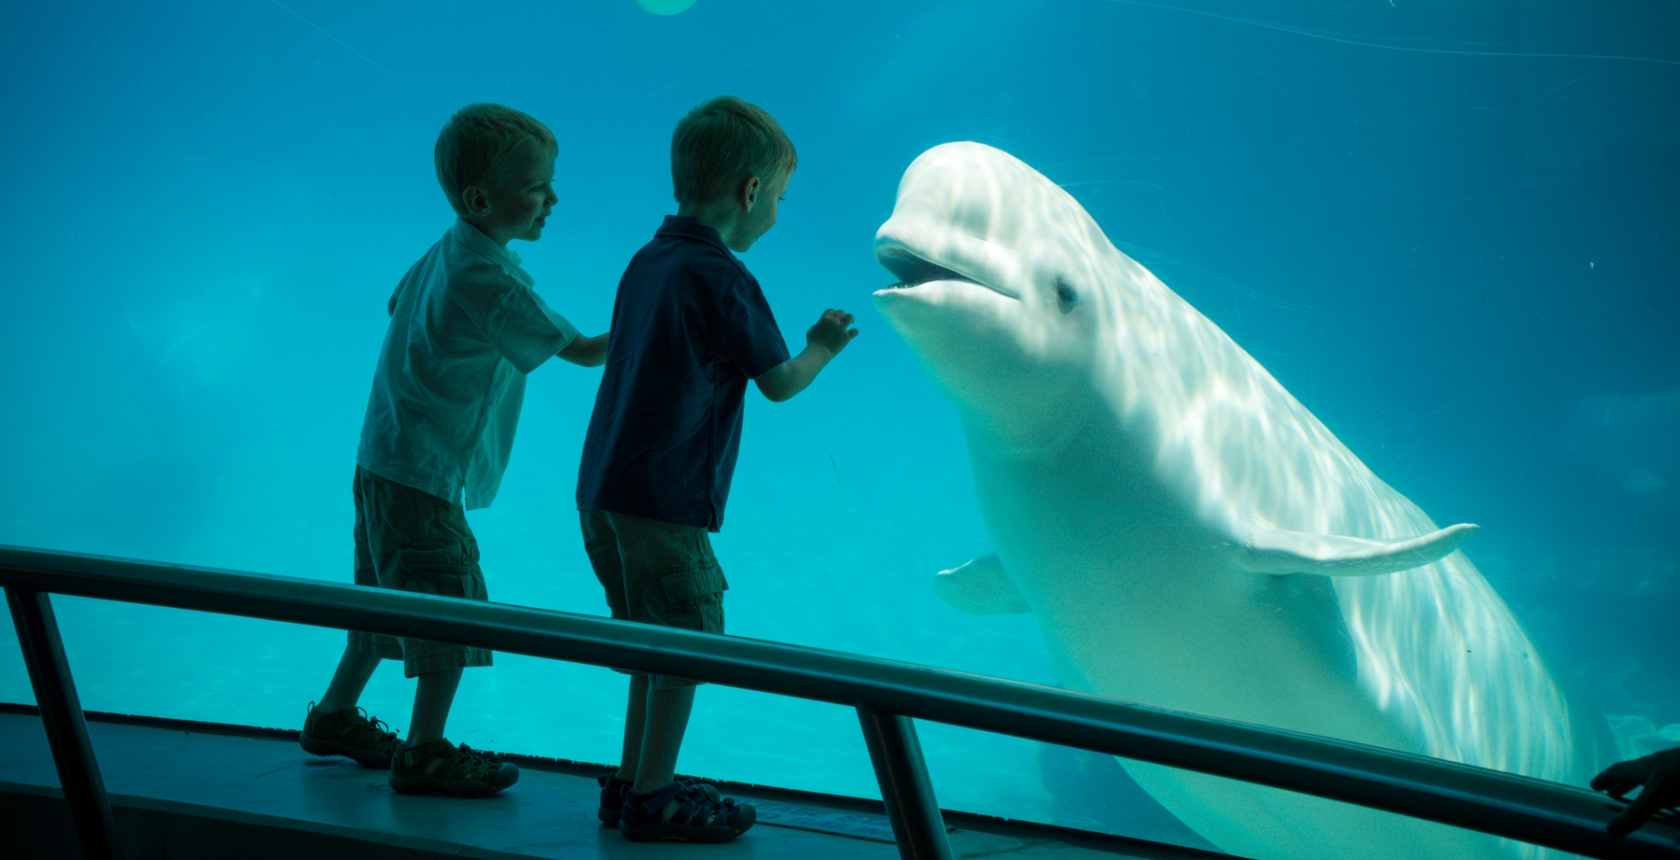 Careers @ Marineland - Find the job that's right for you - Careers Marineland Canada